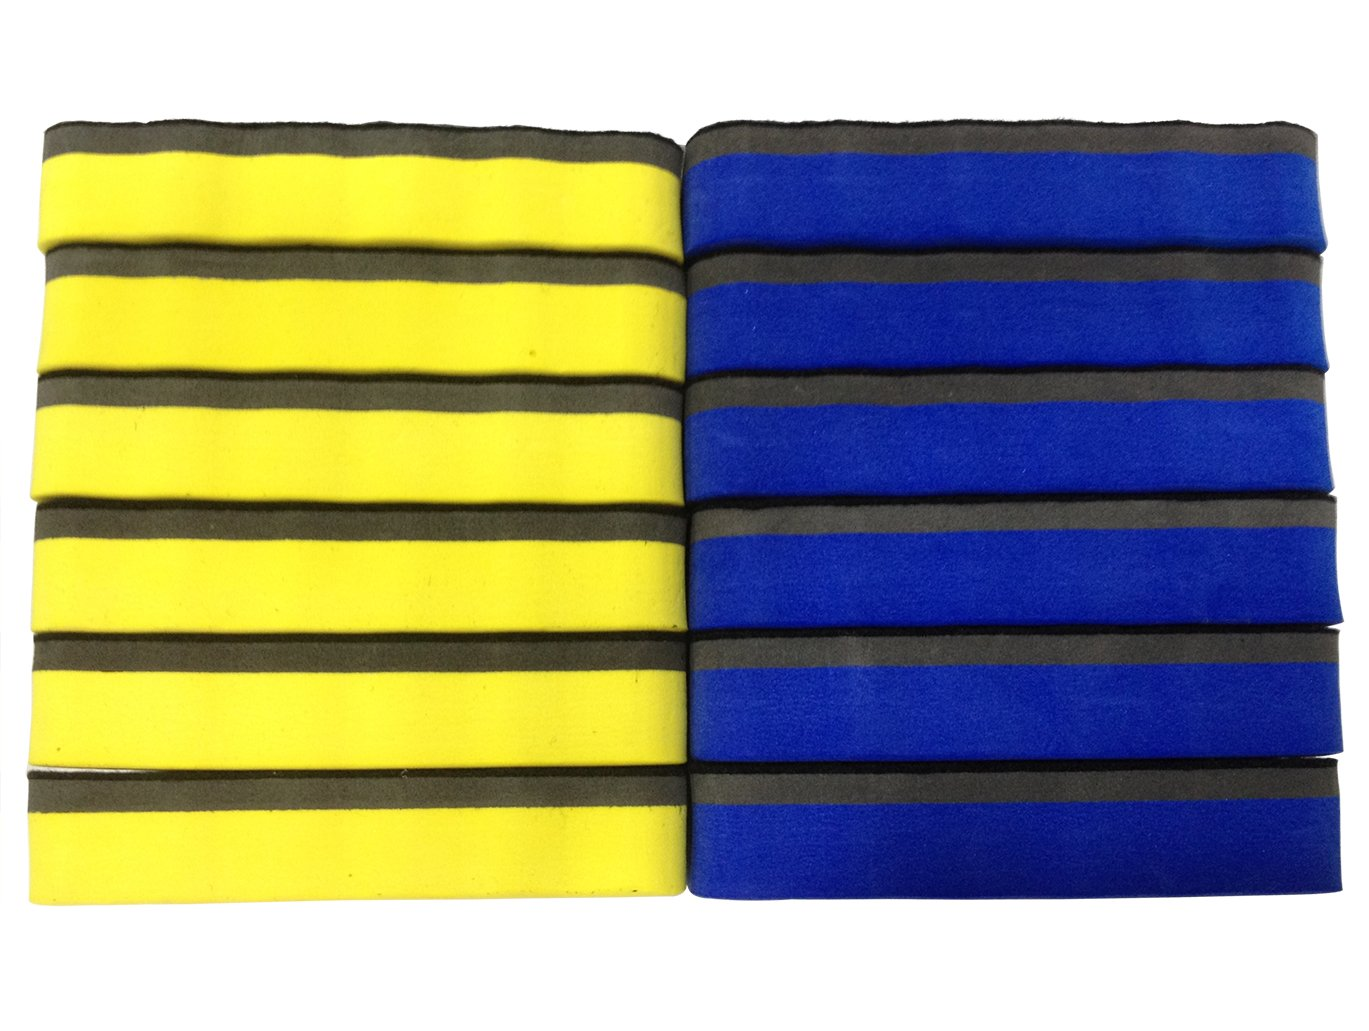 Attmu Magnetic Whiteboard Dry Erasers, 12 Pack - 6 Blue and 6 Yellow, 2.2 x 4 Inches Each by Attmu (Image #4)